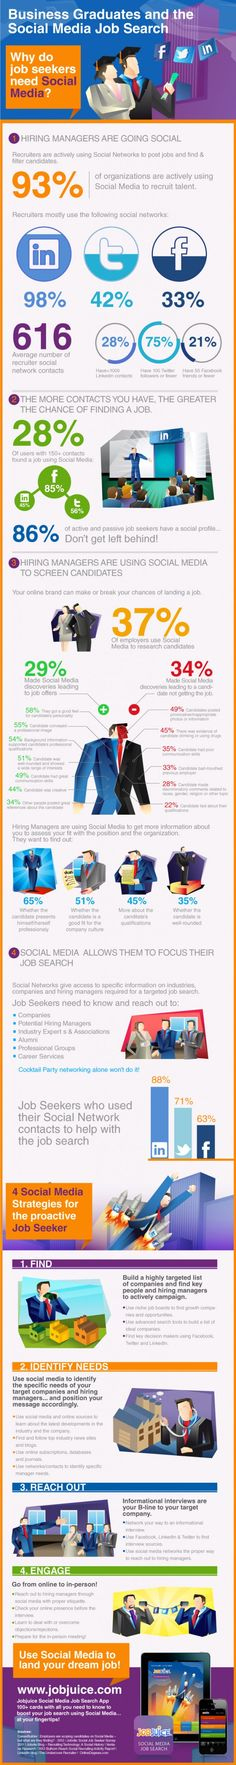 4 Social Media Strategies for Proactive Job Seekers [INFOGRAPHIC]